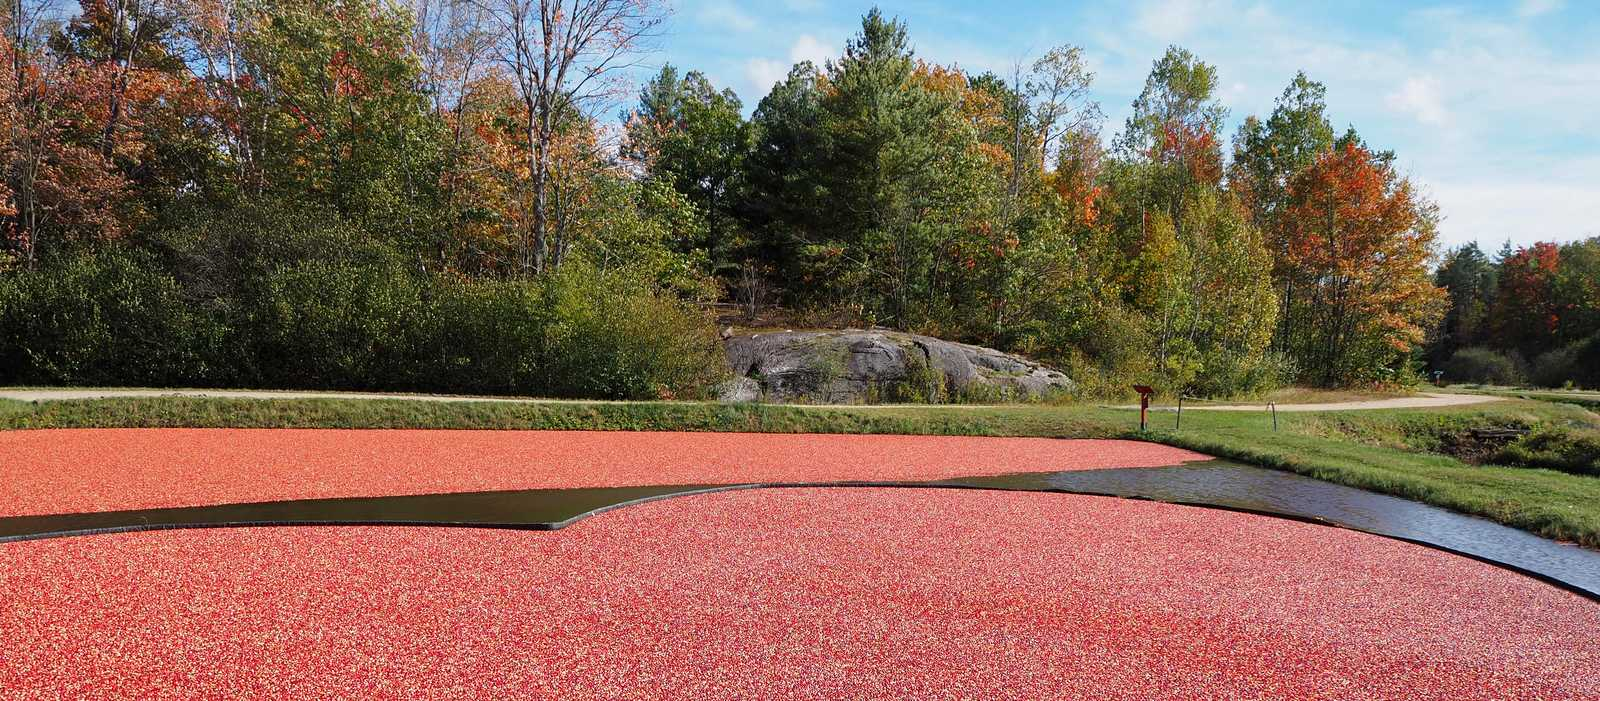 Das Cranberry-Paradies der Muskoka Lakes & Farm Winery in Ontario